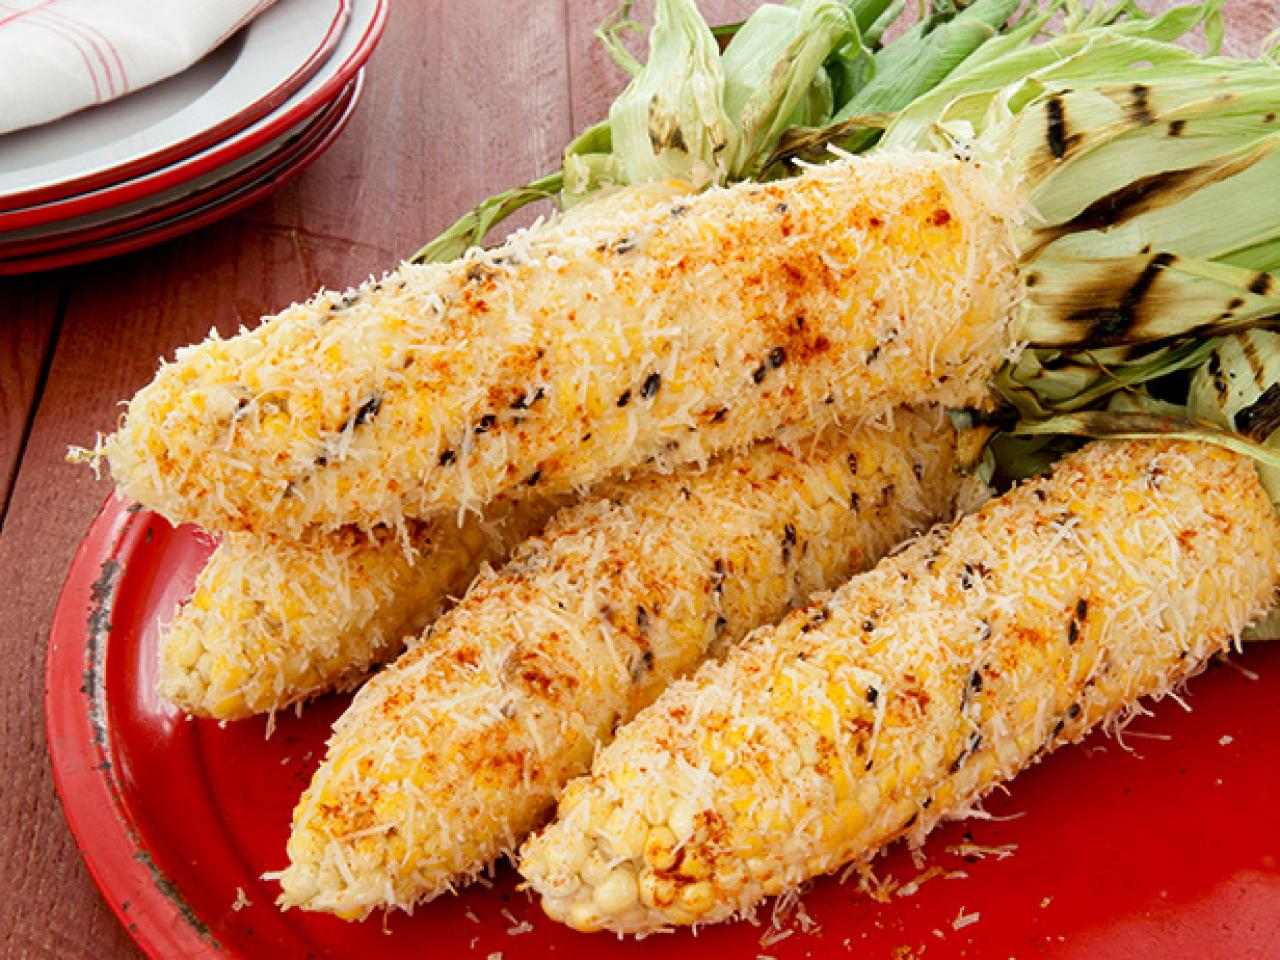 50 Fresh Corn Recipes Recipes And Cooking Food Network